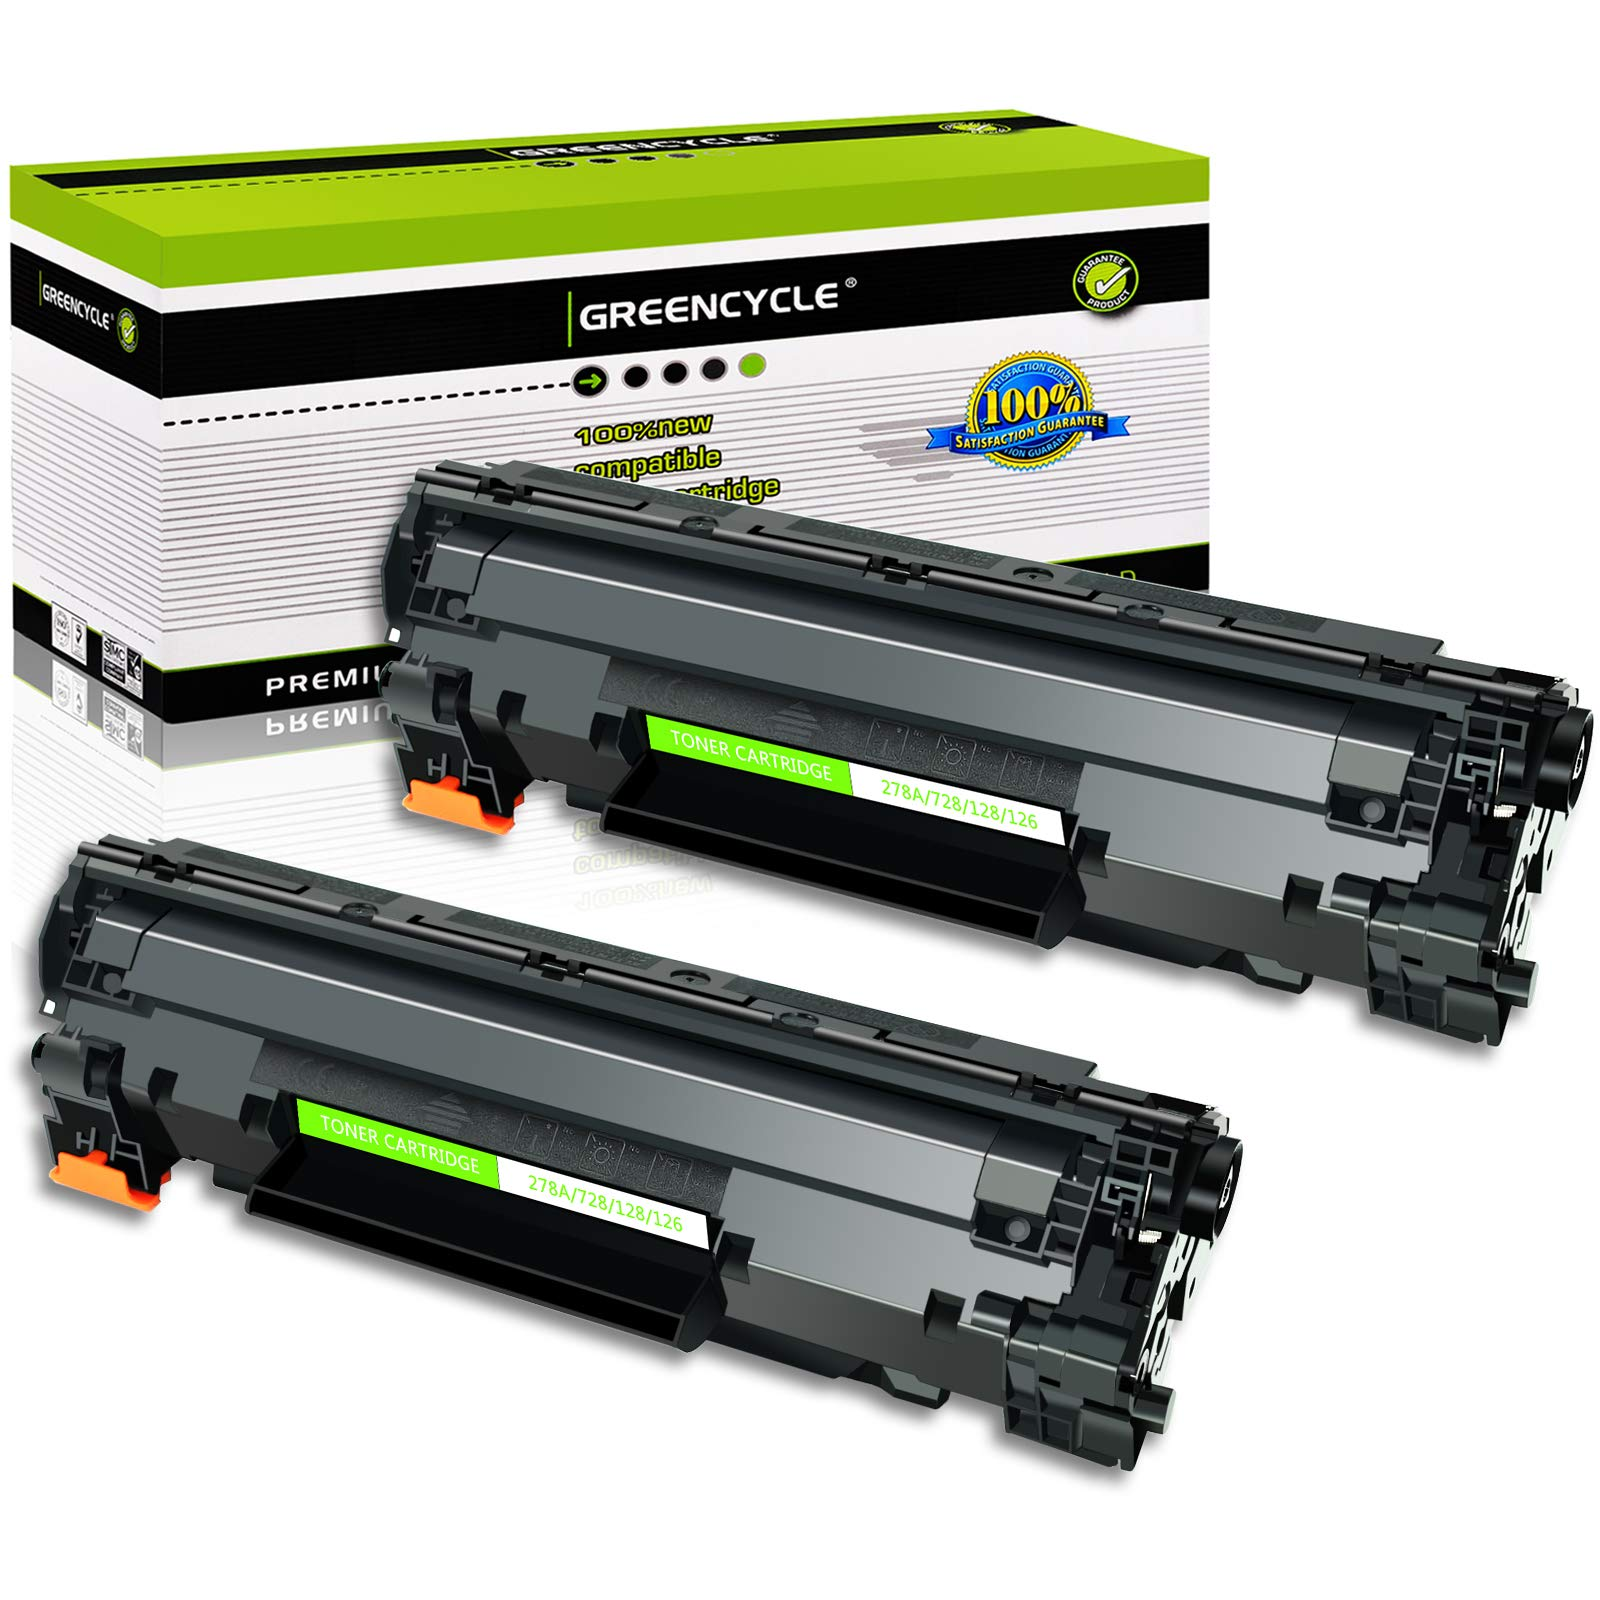 GREENCYCLE Compatible Toner Cartridge Replacement for Canon 126 CRG-126 CRG126 3483B001 for use in ImageClass LBP6200d and LBP6230dw LBP-6230dn LBP-6230 Wireless Laser Printers (Black,2 PK)